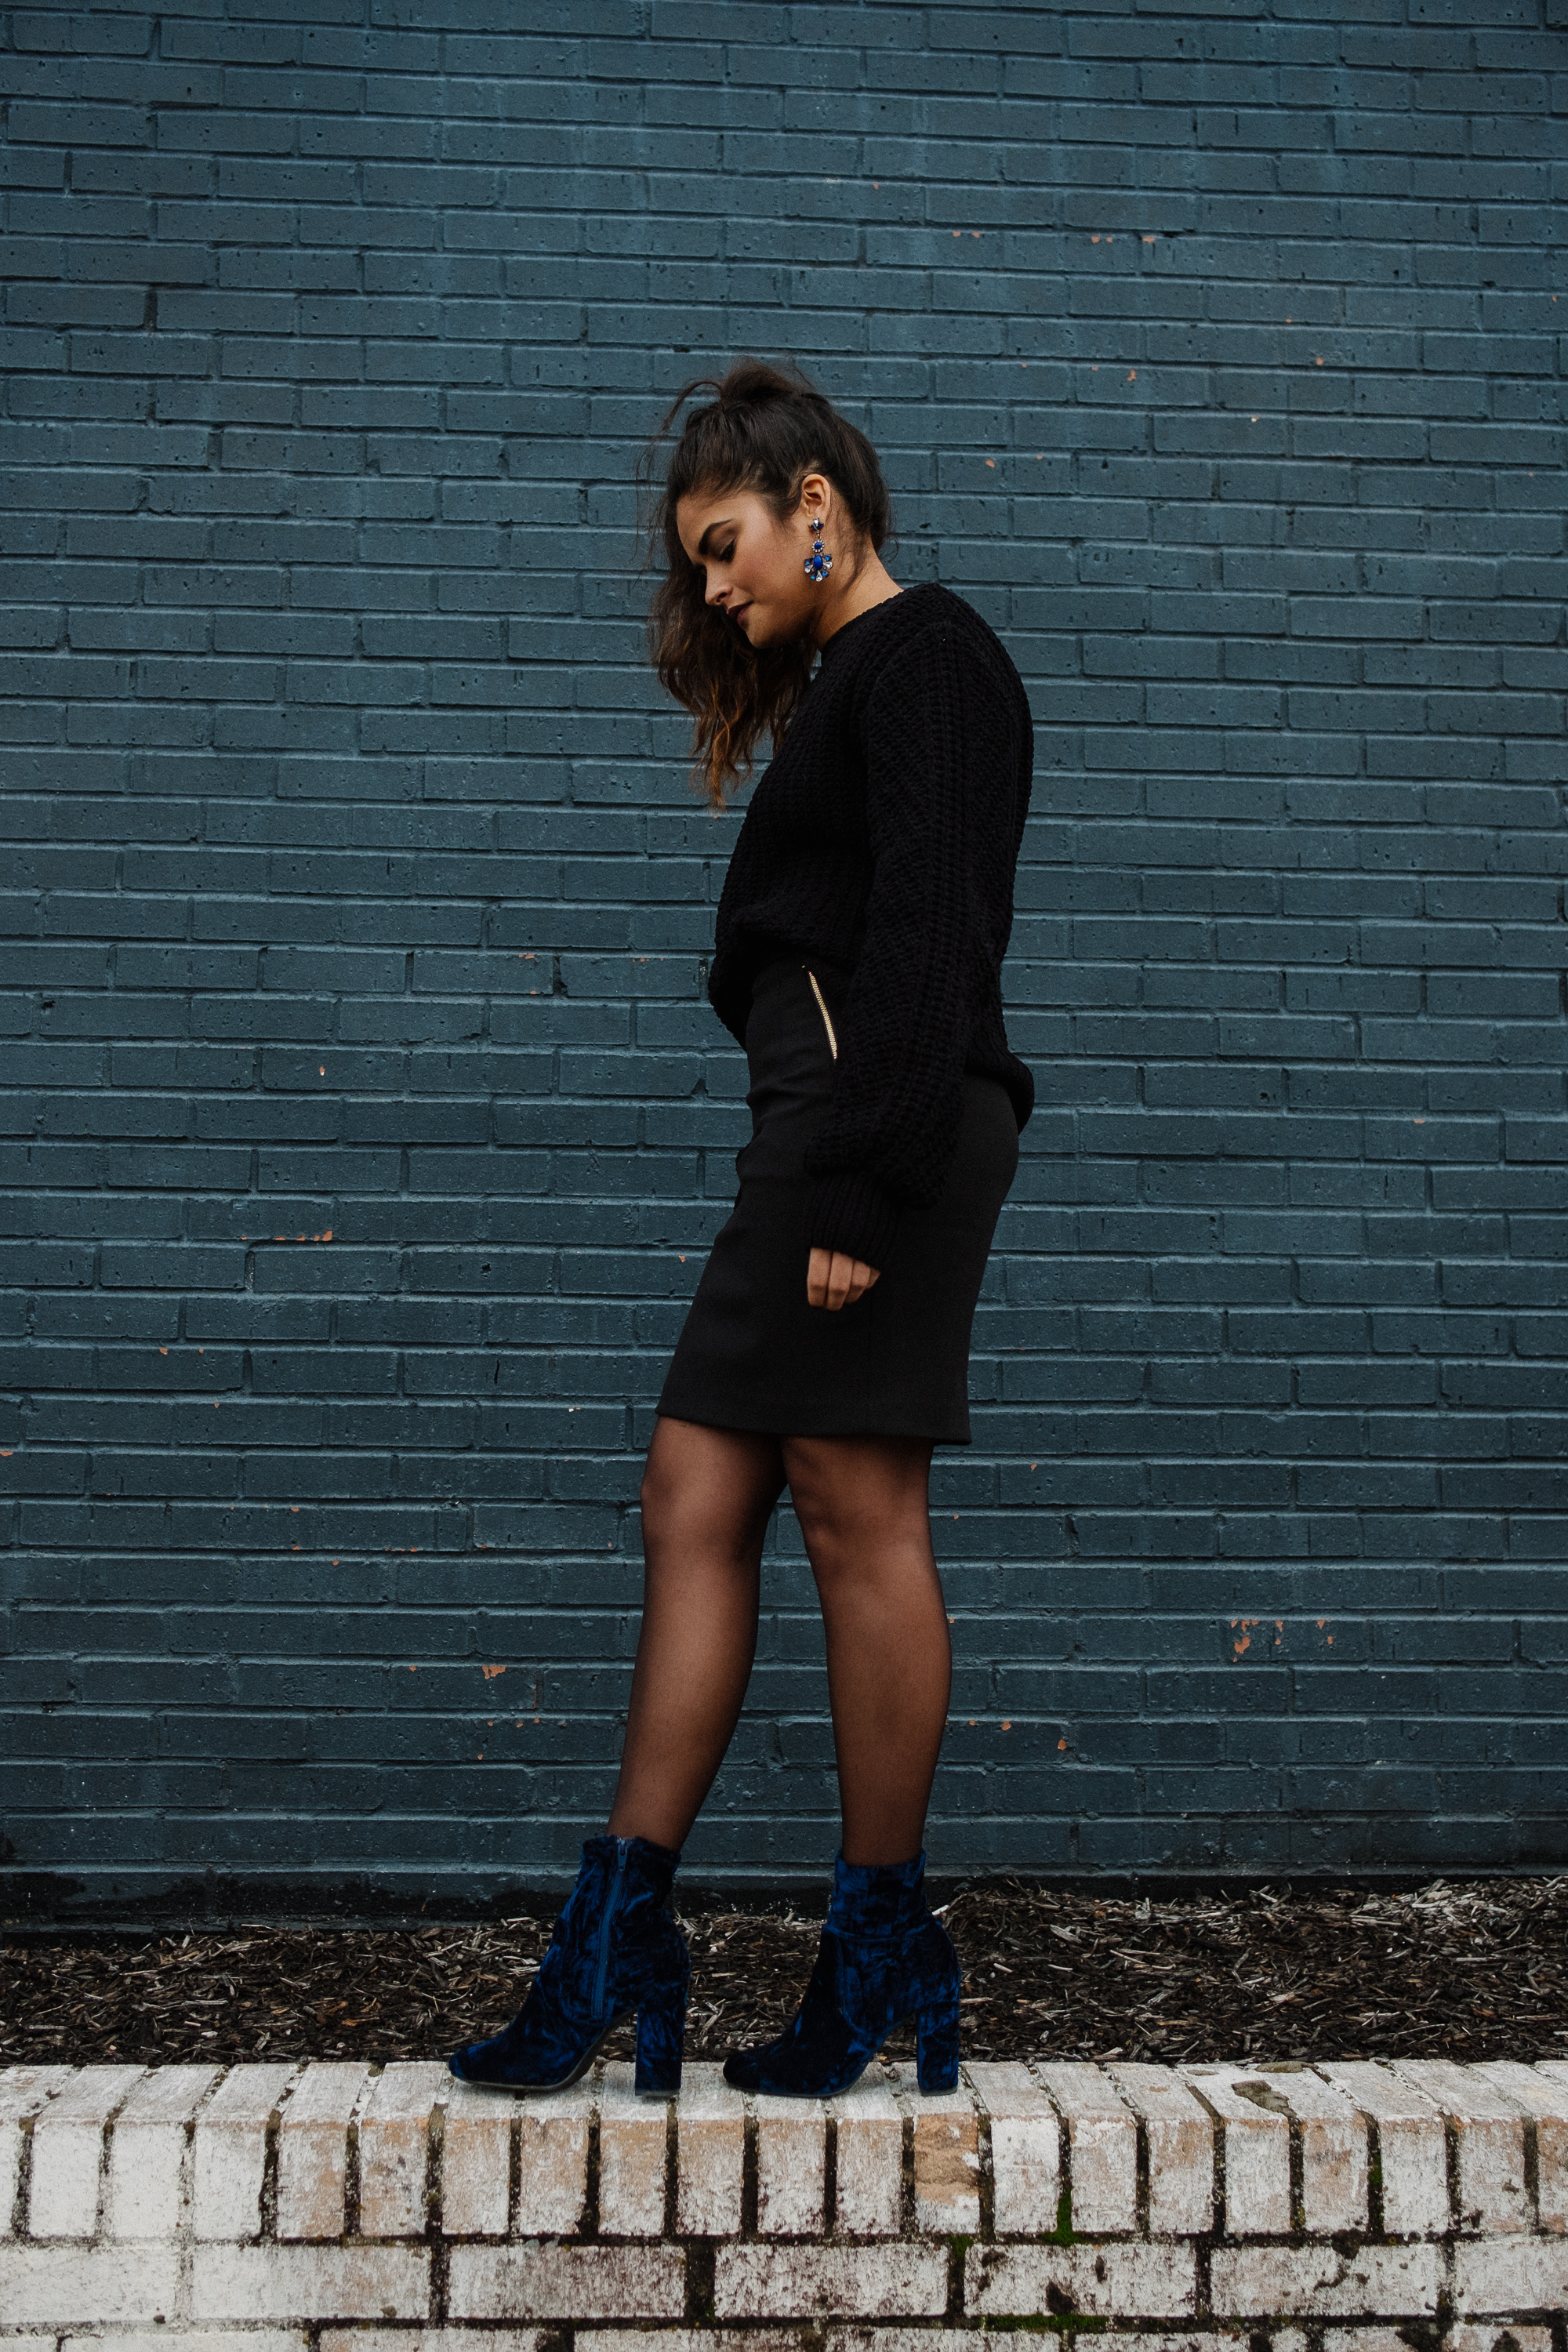 Priya the Blog, Nashville fashion blog, Nashville fashion, Nashville blogger, blue velvet booties, Target velvet booties, Winter outfit, Winter outfit with Velvet booties, Monochrome black outfit with blue booties